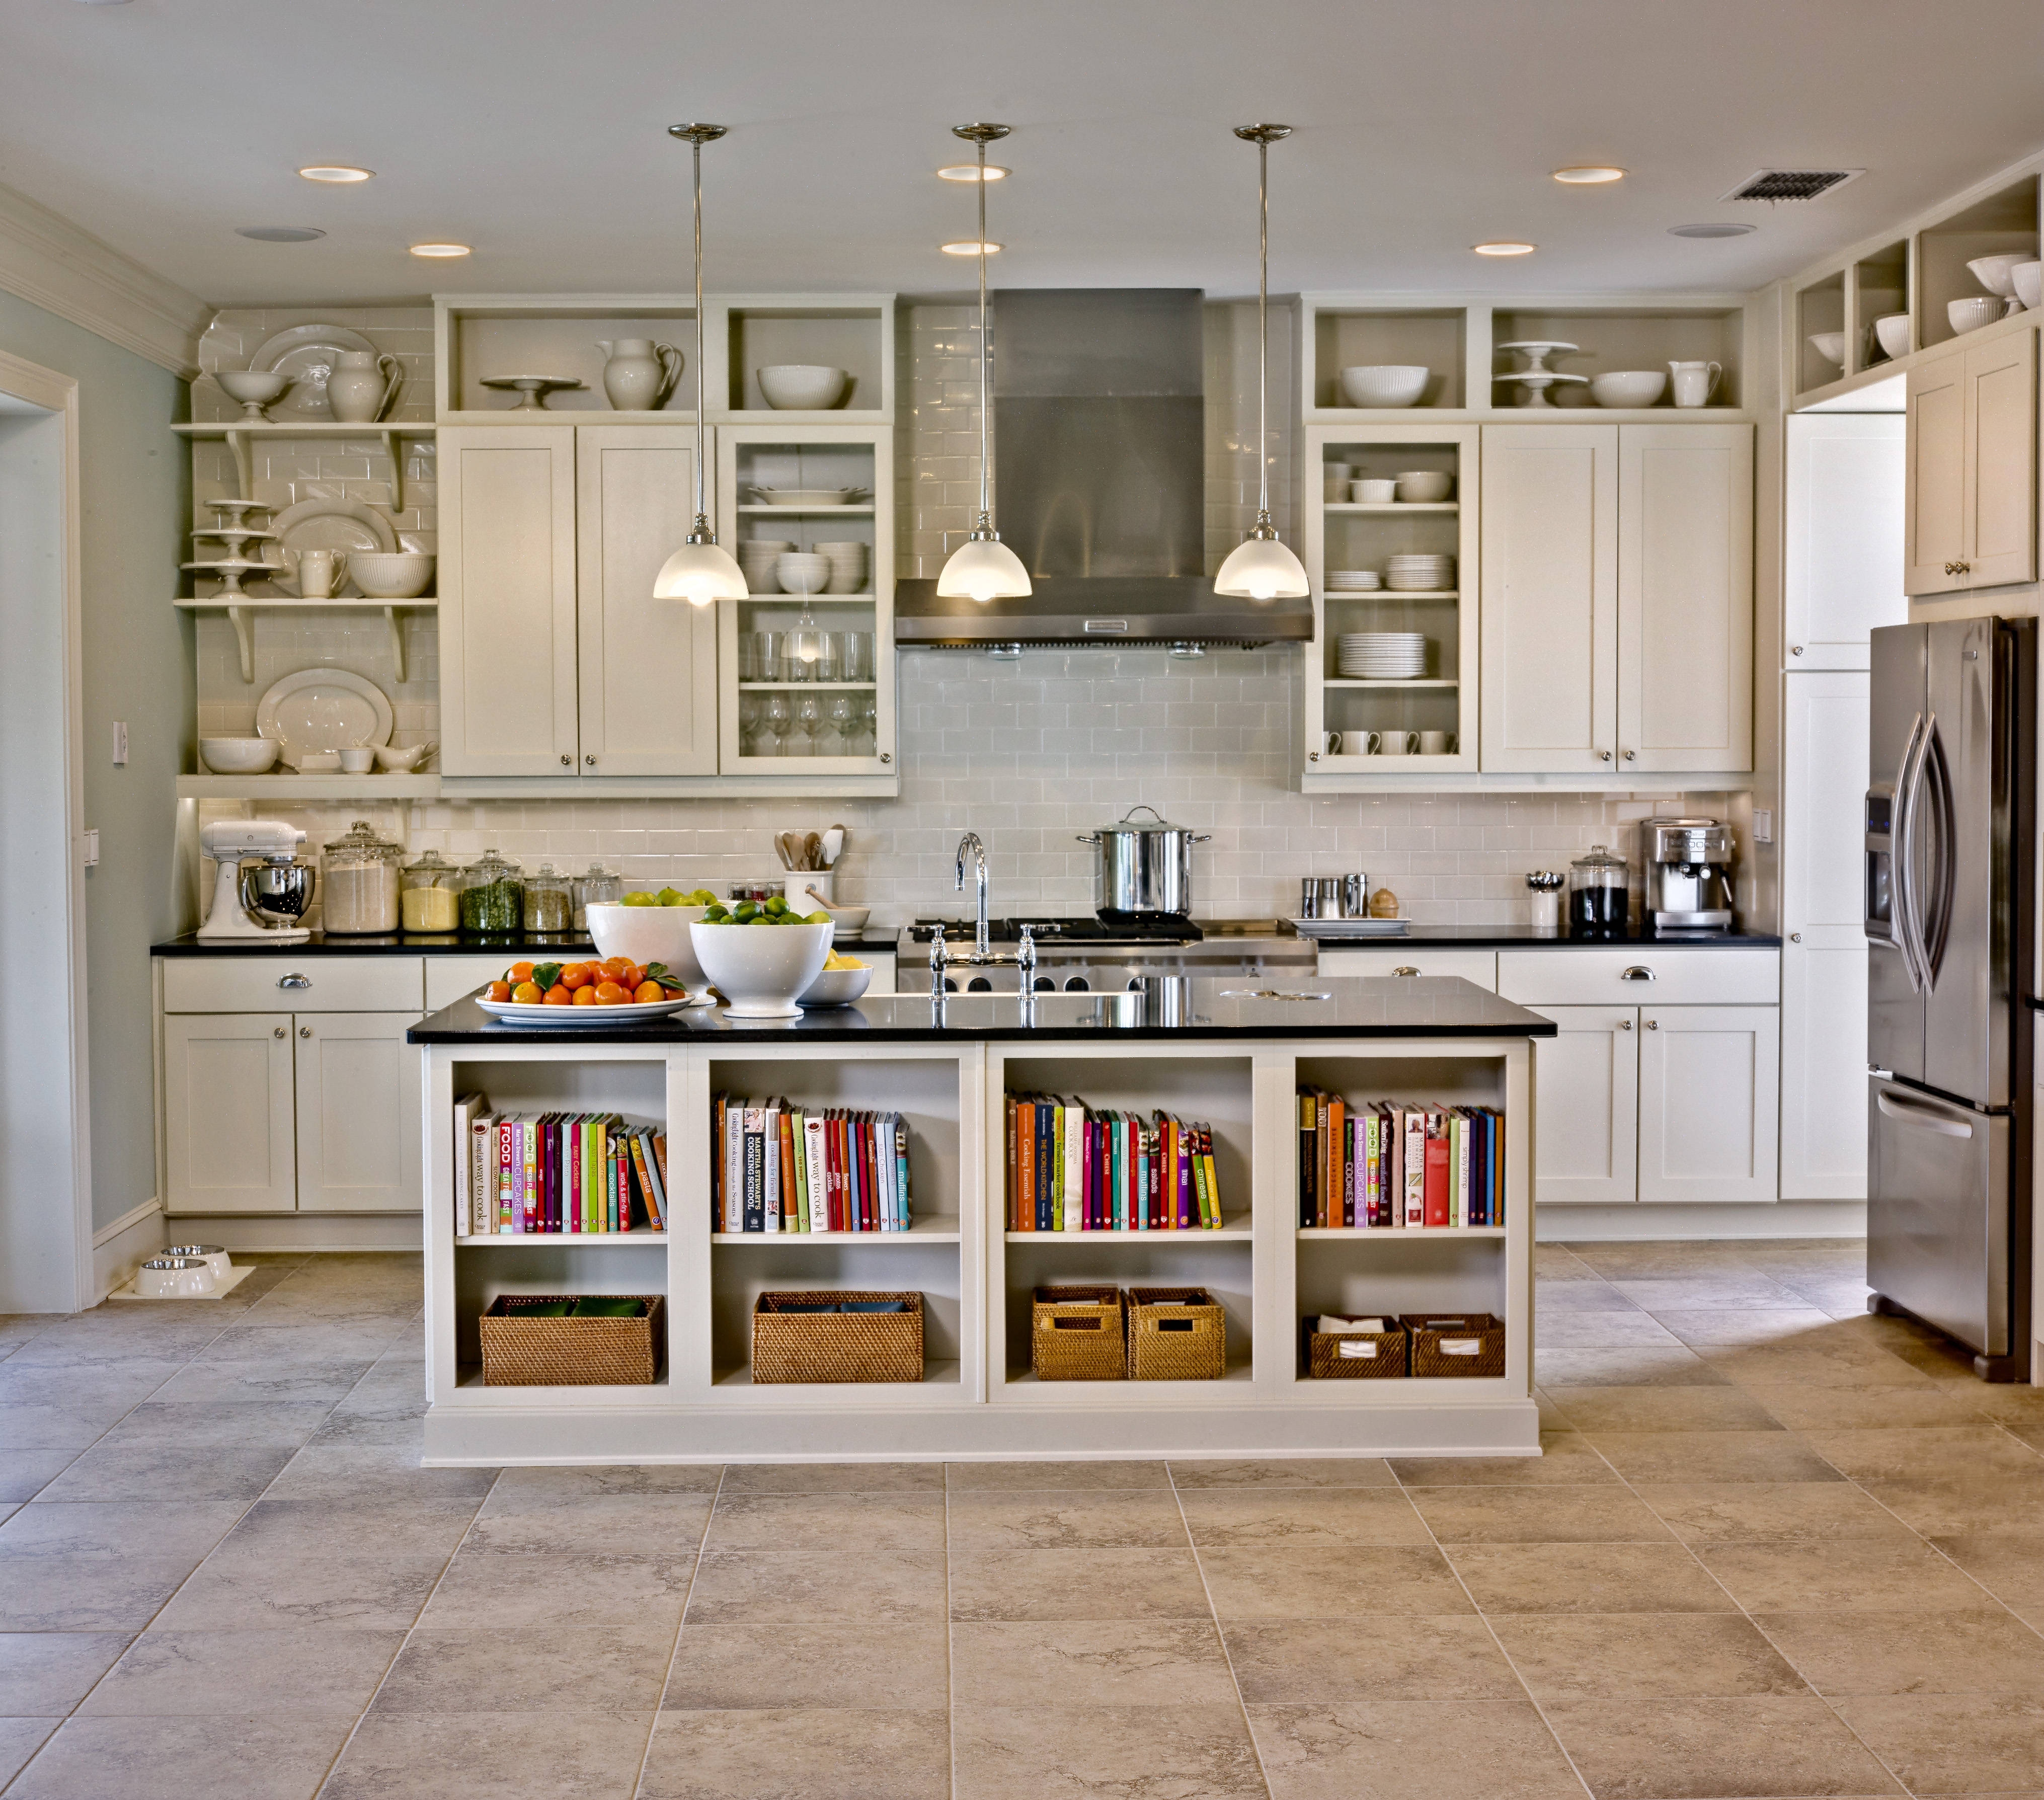 Decorating Ideas For Small Space Above Kitchen Cabinets